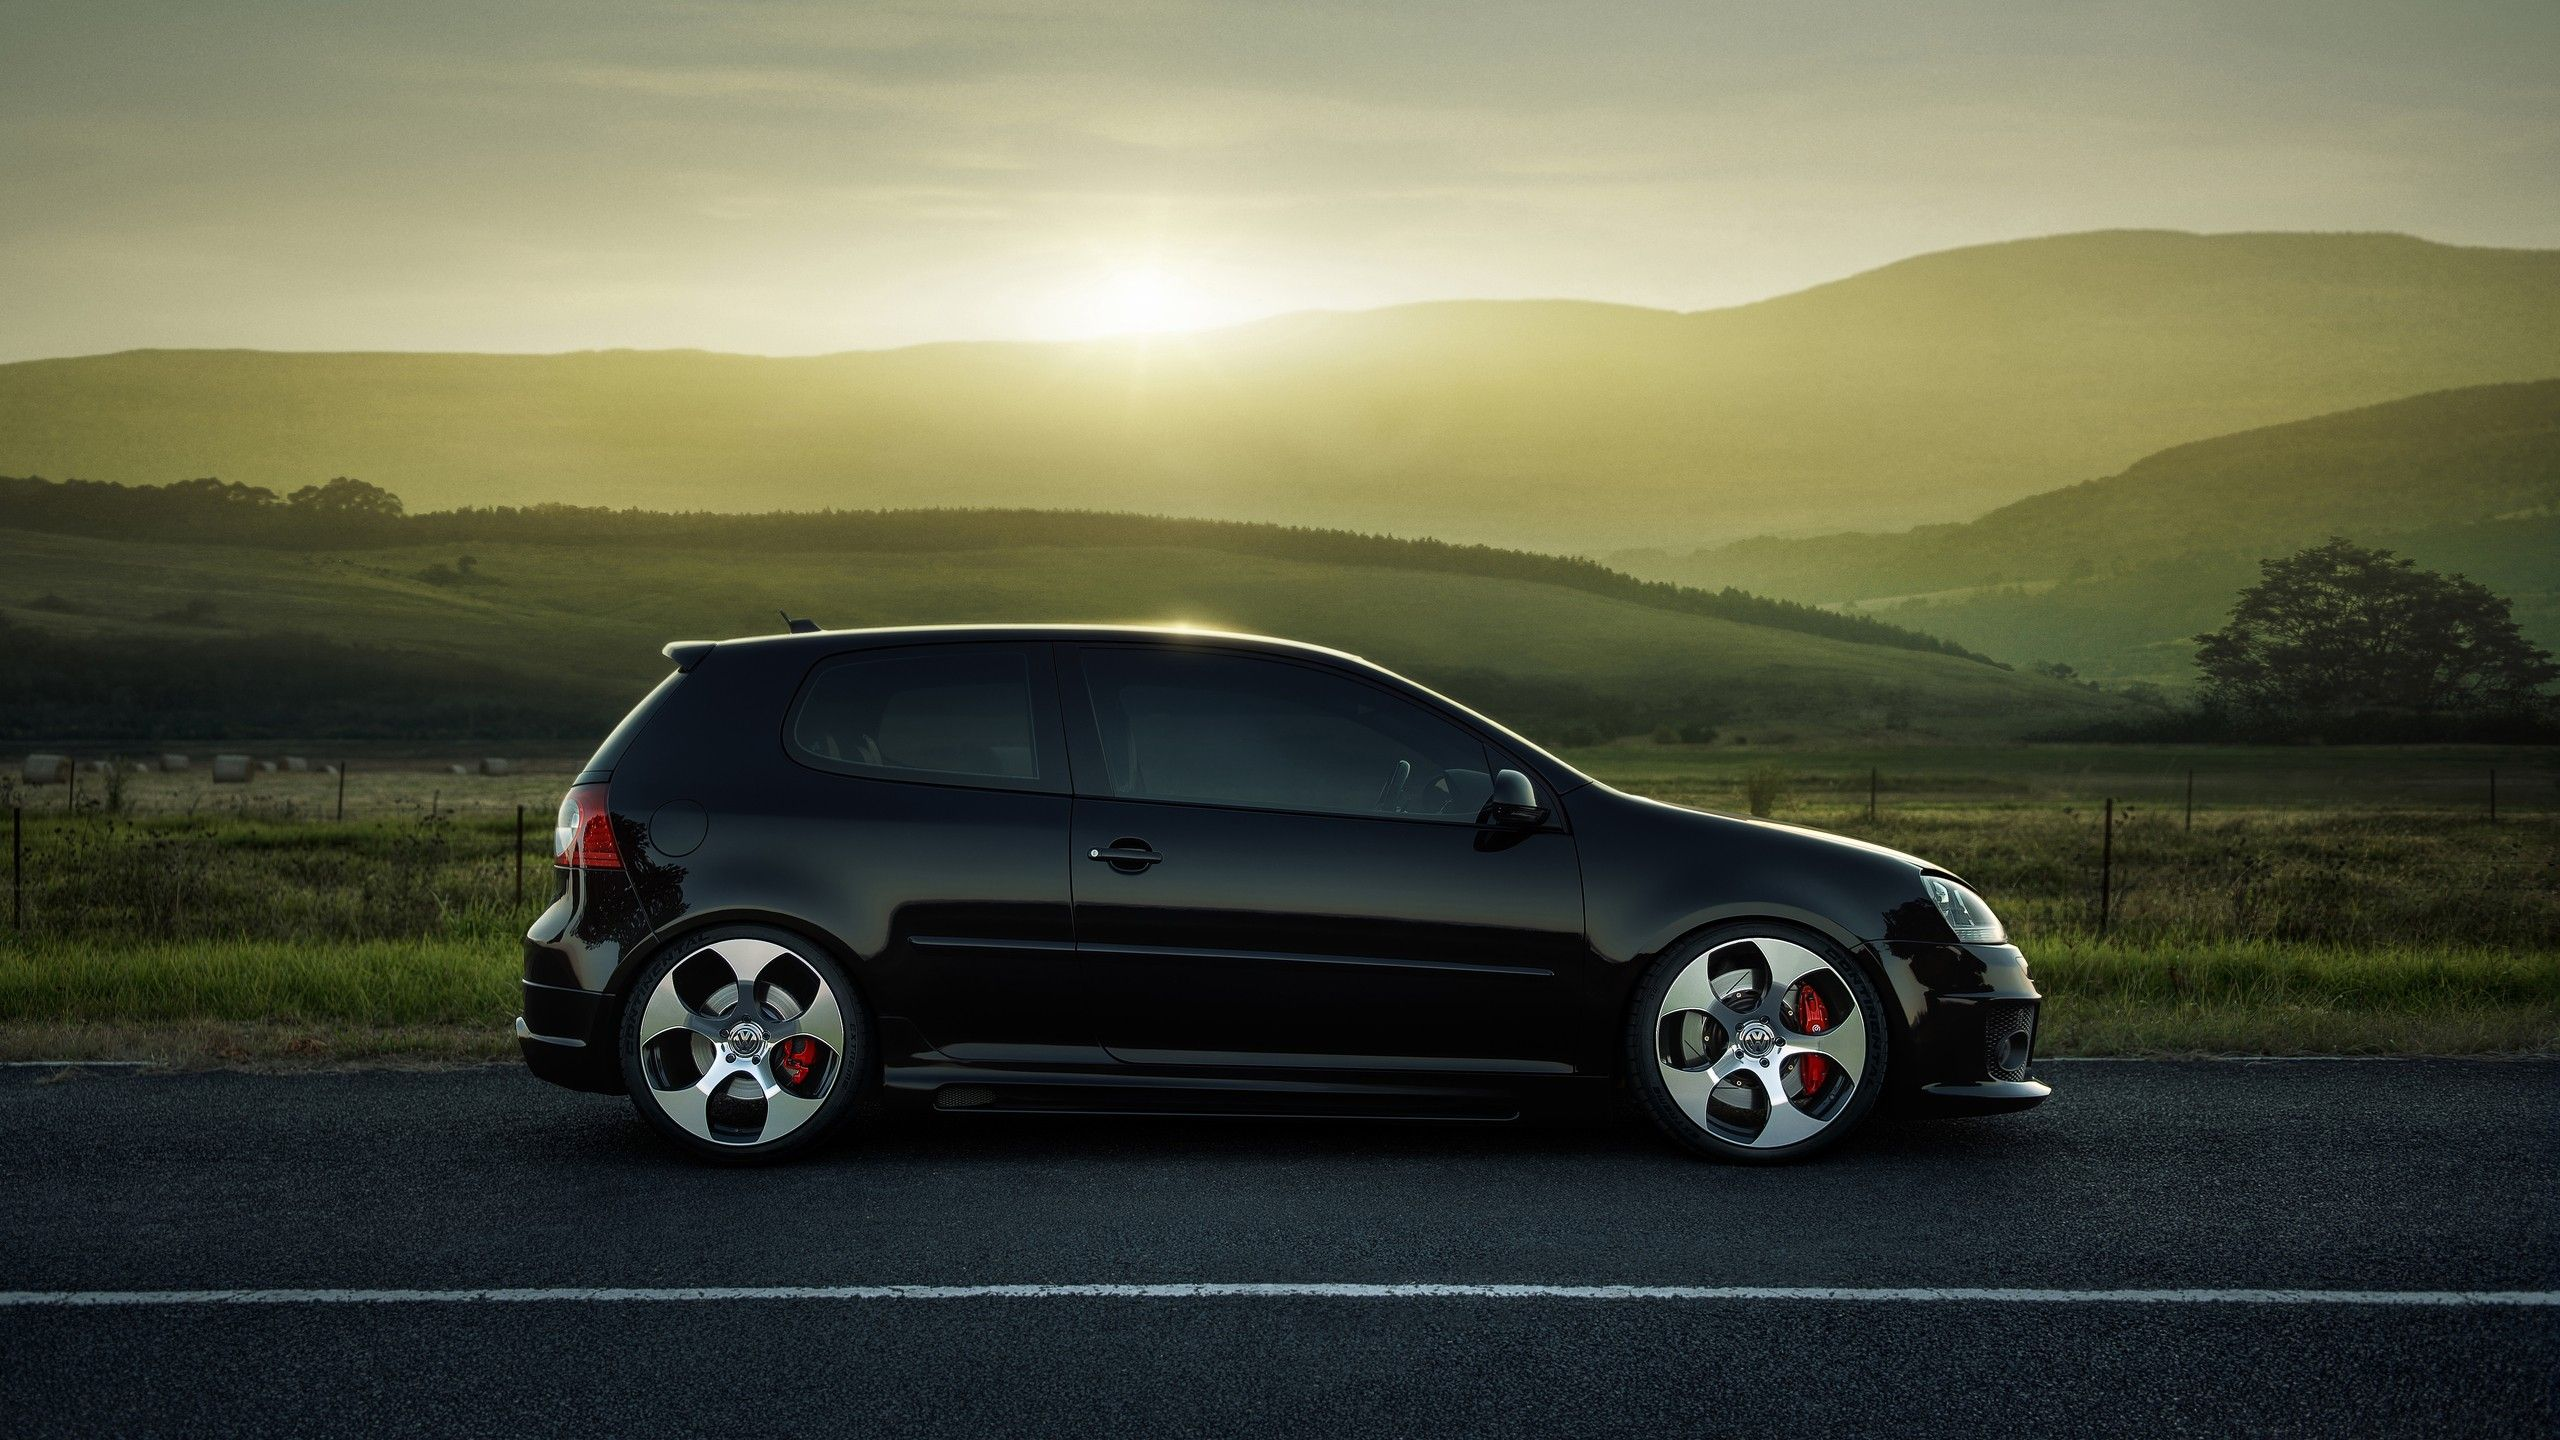 Golf Mk5 Wallpaper